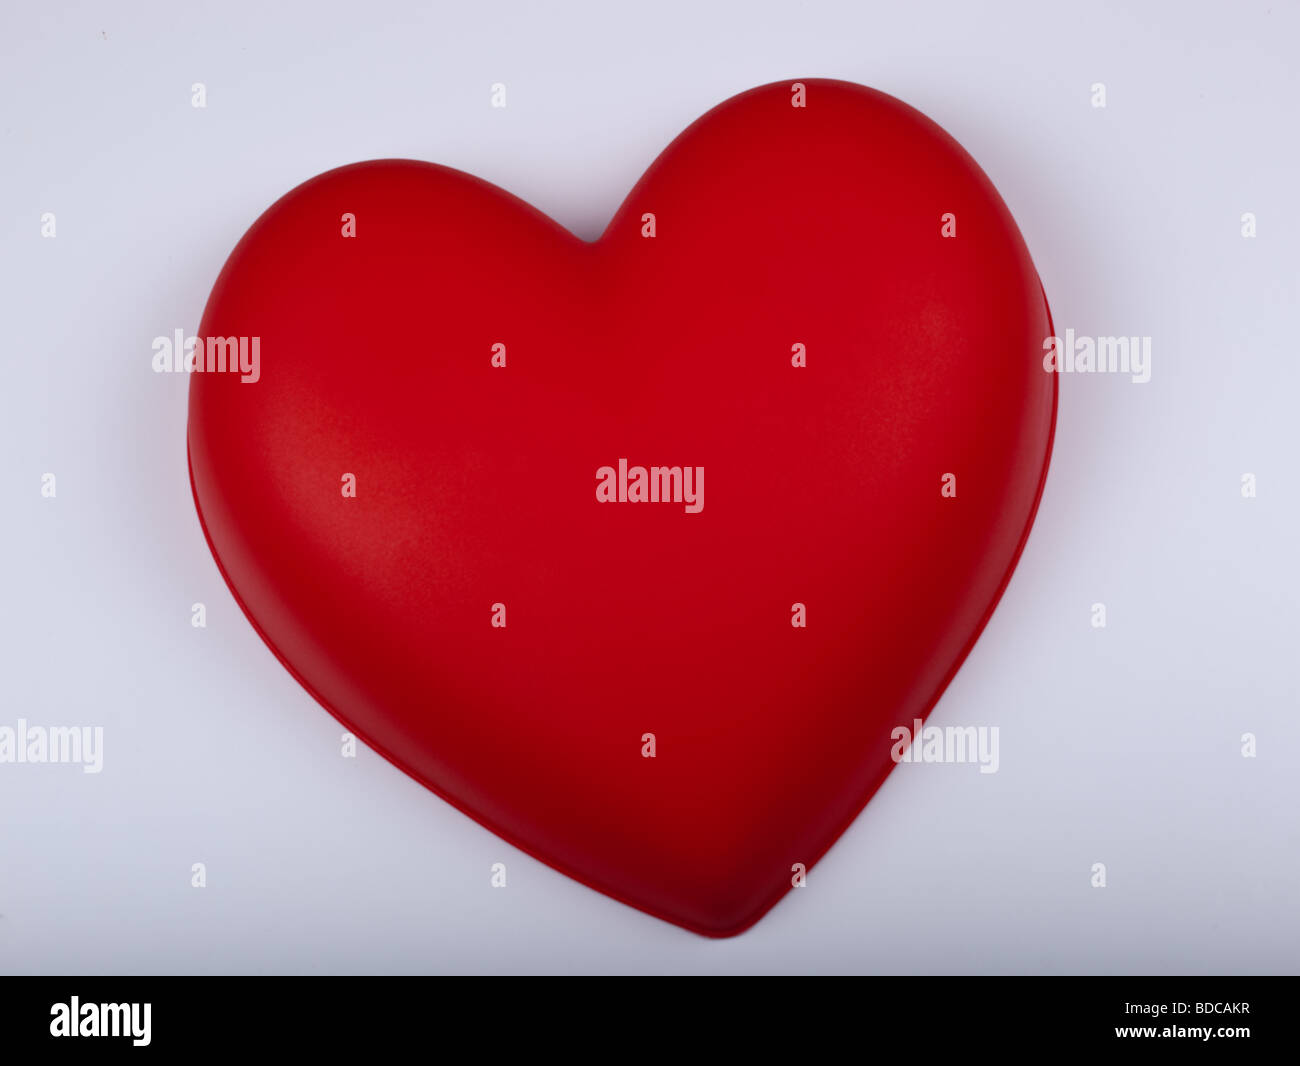 Red plastic heart lies on a white plastic background - Stock Image